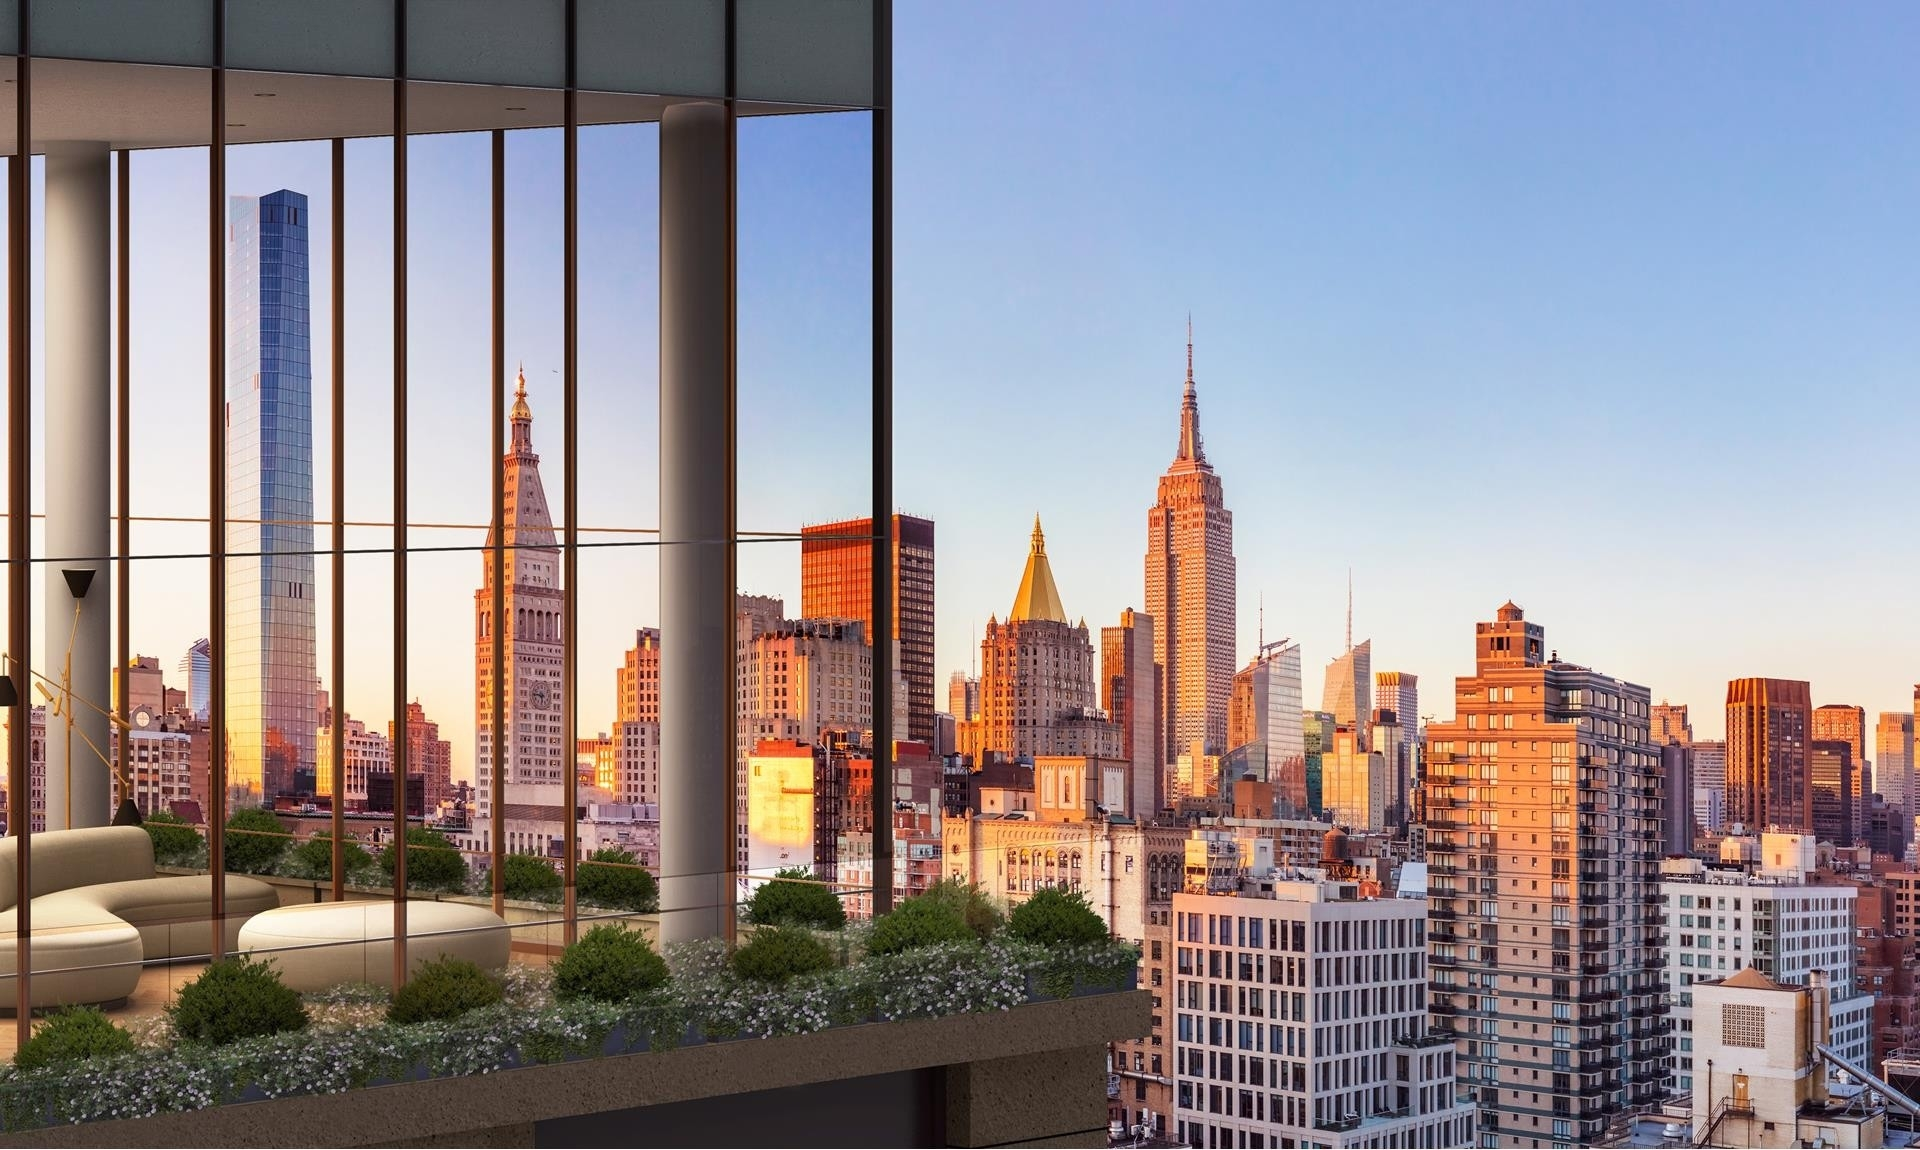 Condominium for Sale at Gramercy Square, 215 East 19th St, 17A Gramercy Park, New York, NY 10003